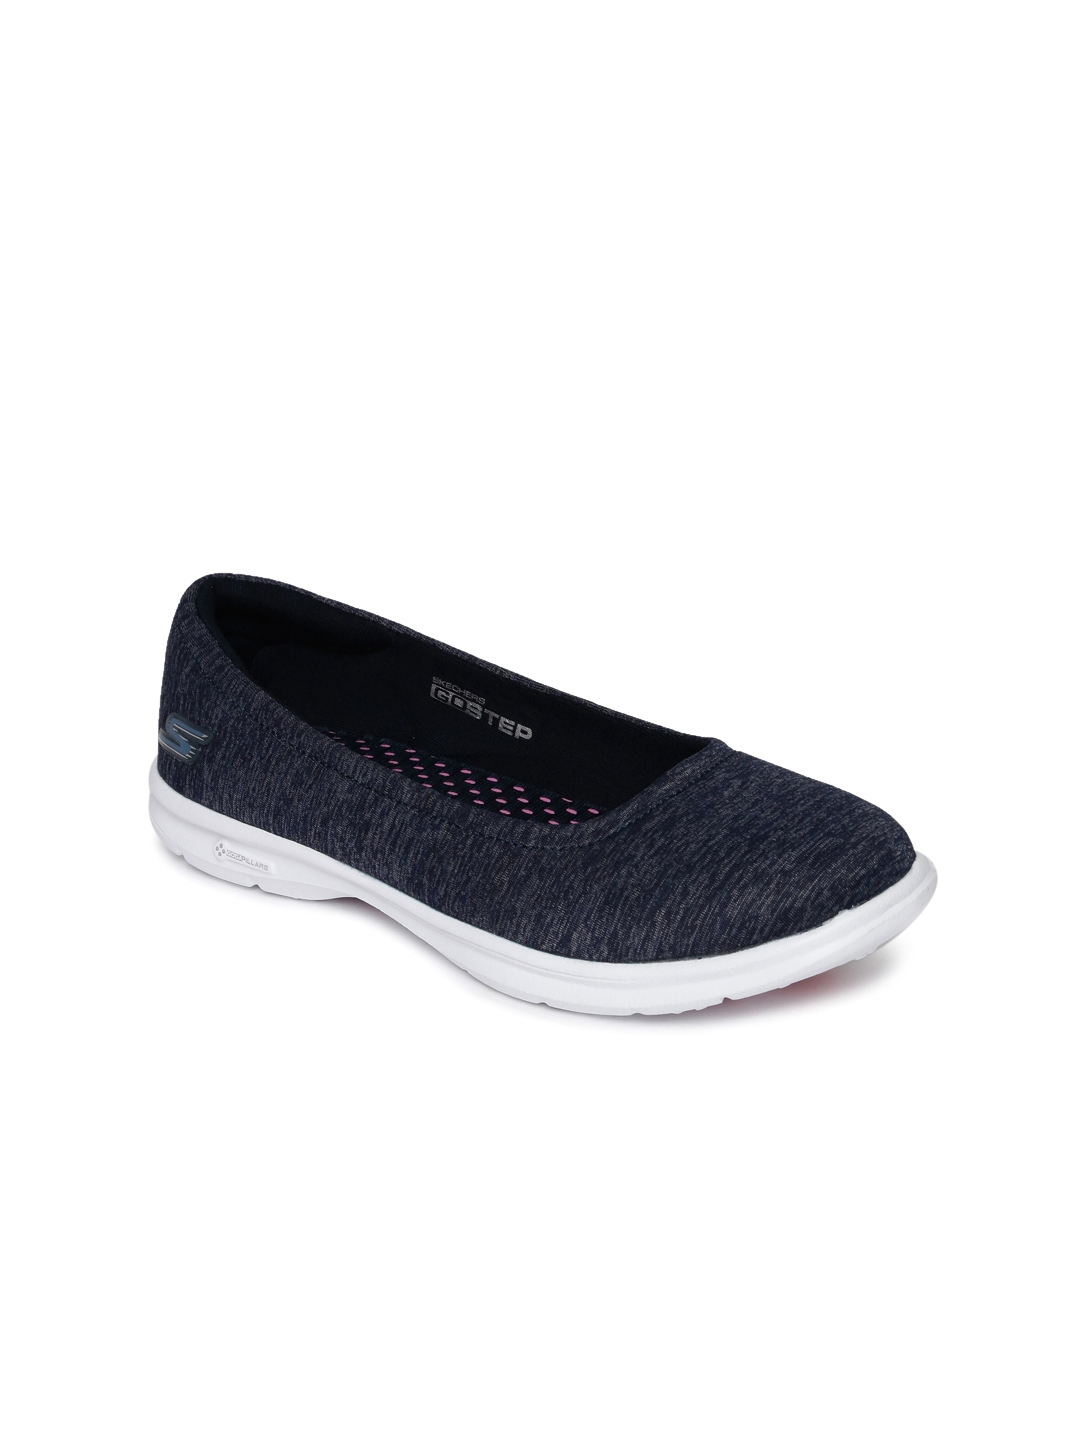 1807321022a Buy Skechers Women Navy Blue Go Step Walking Shoes - Sports Shoes ...